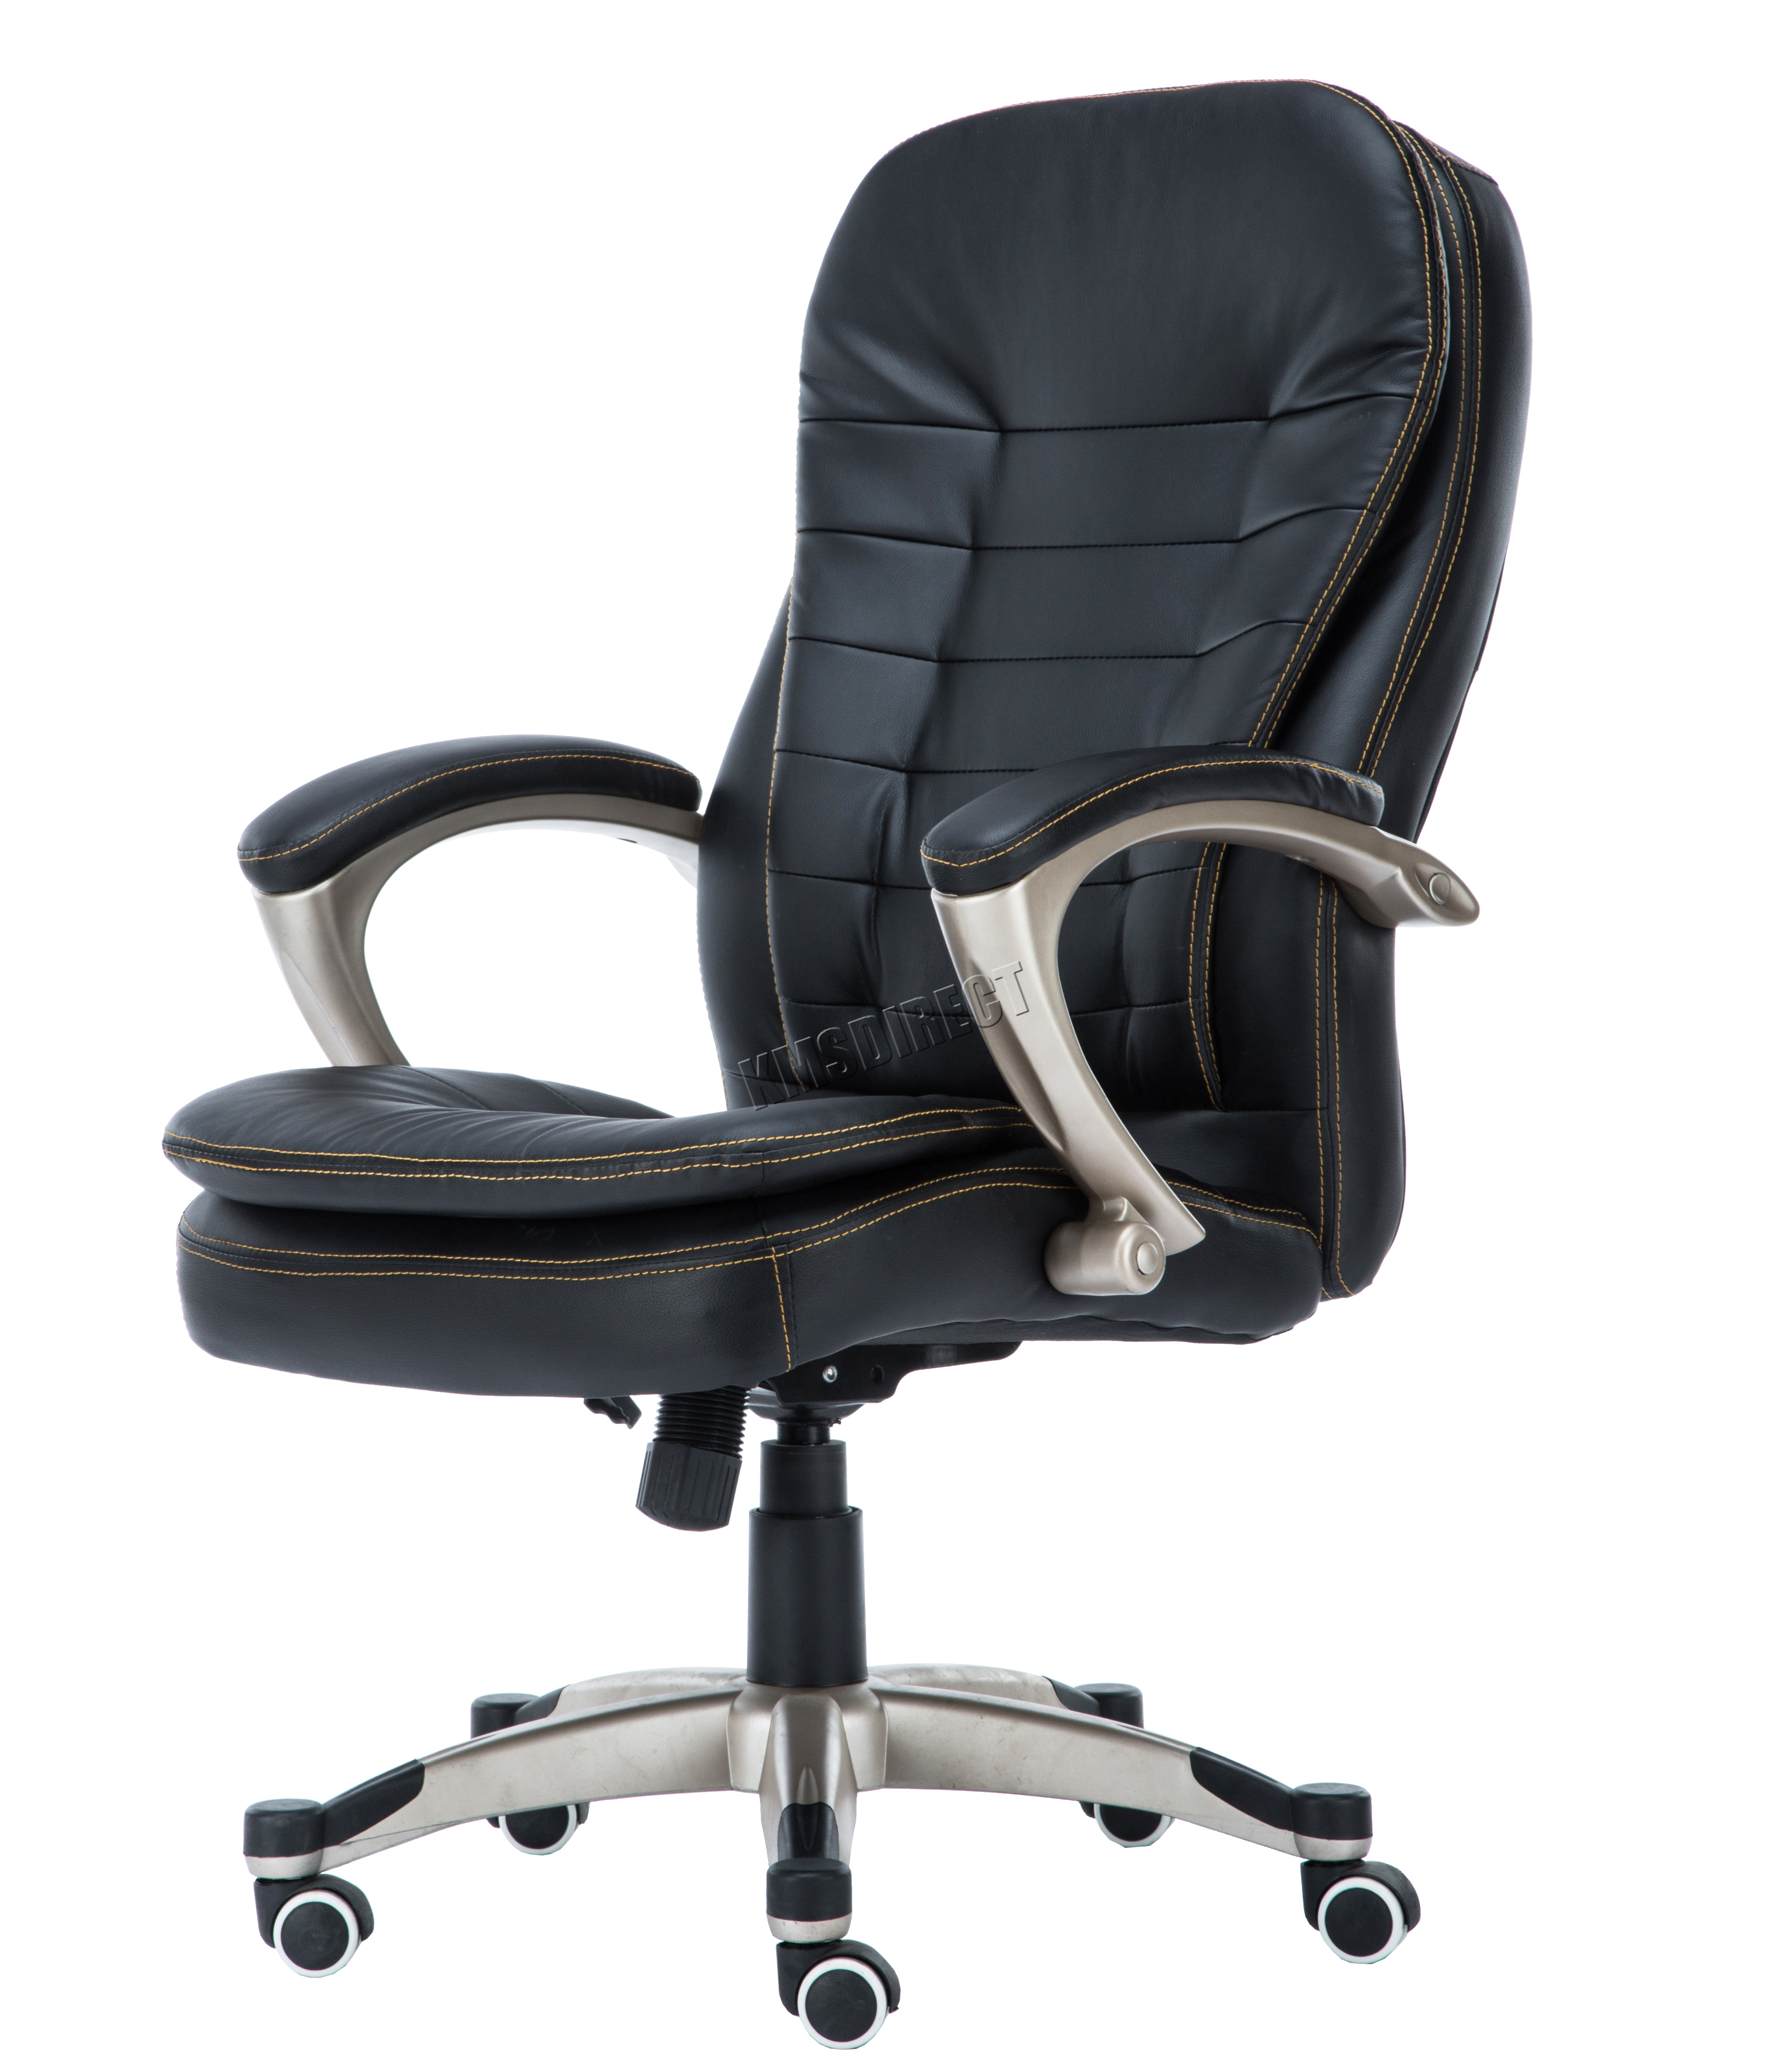 Sentinel Westwood Computer Executive Office Chair Pu Leather Swivel High Back Oc01 Black